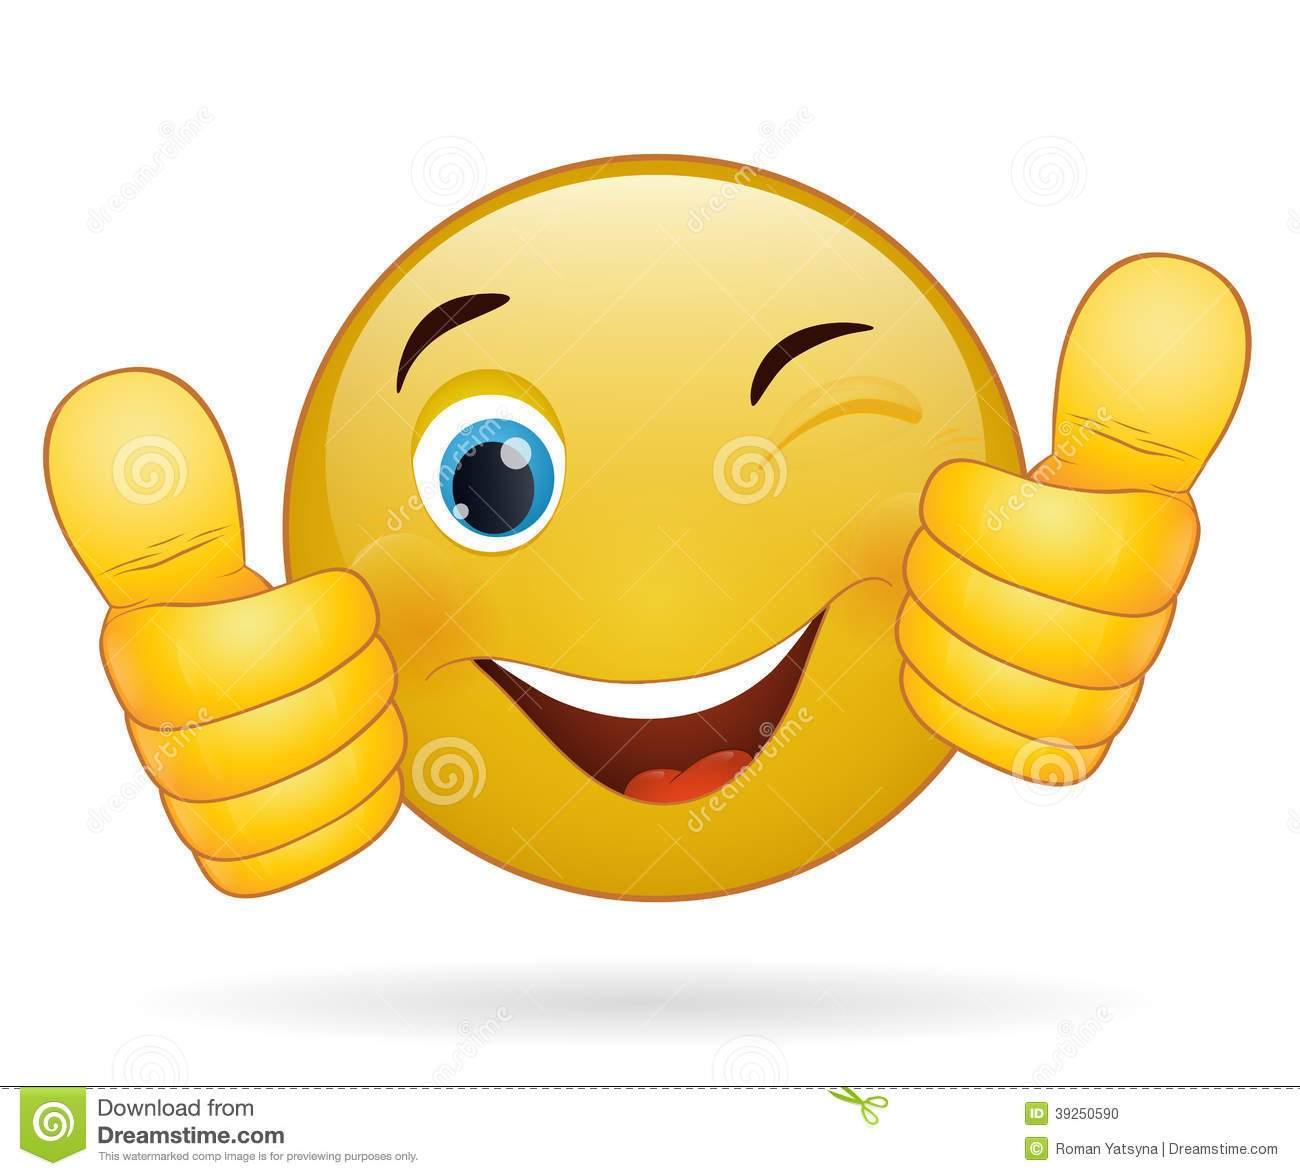 Thumbs up clipart microsoft clip black and white Gallery For > Thumbs Up Clipart Microsoft clip black and white